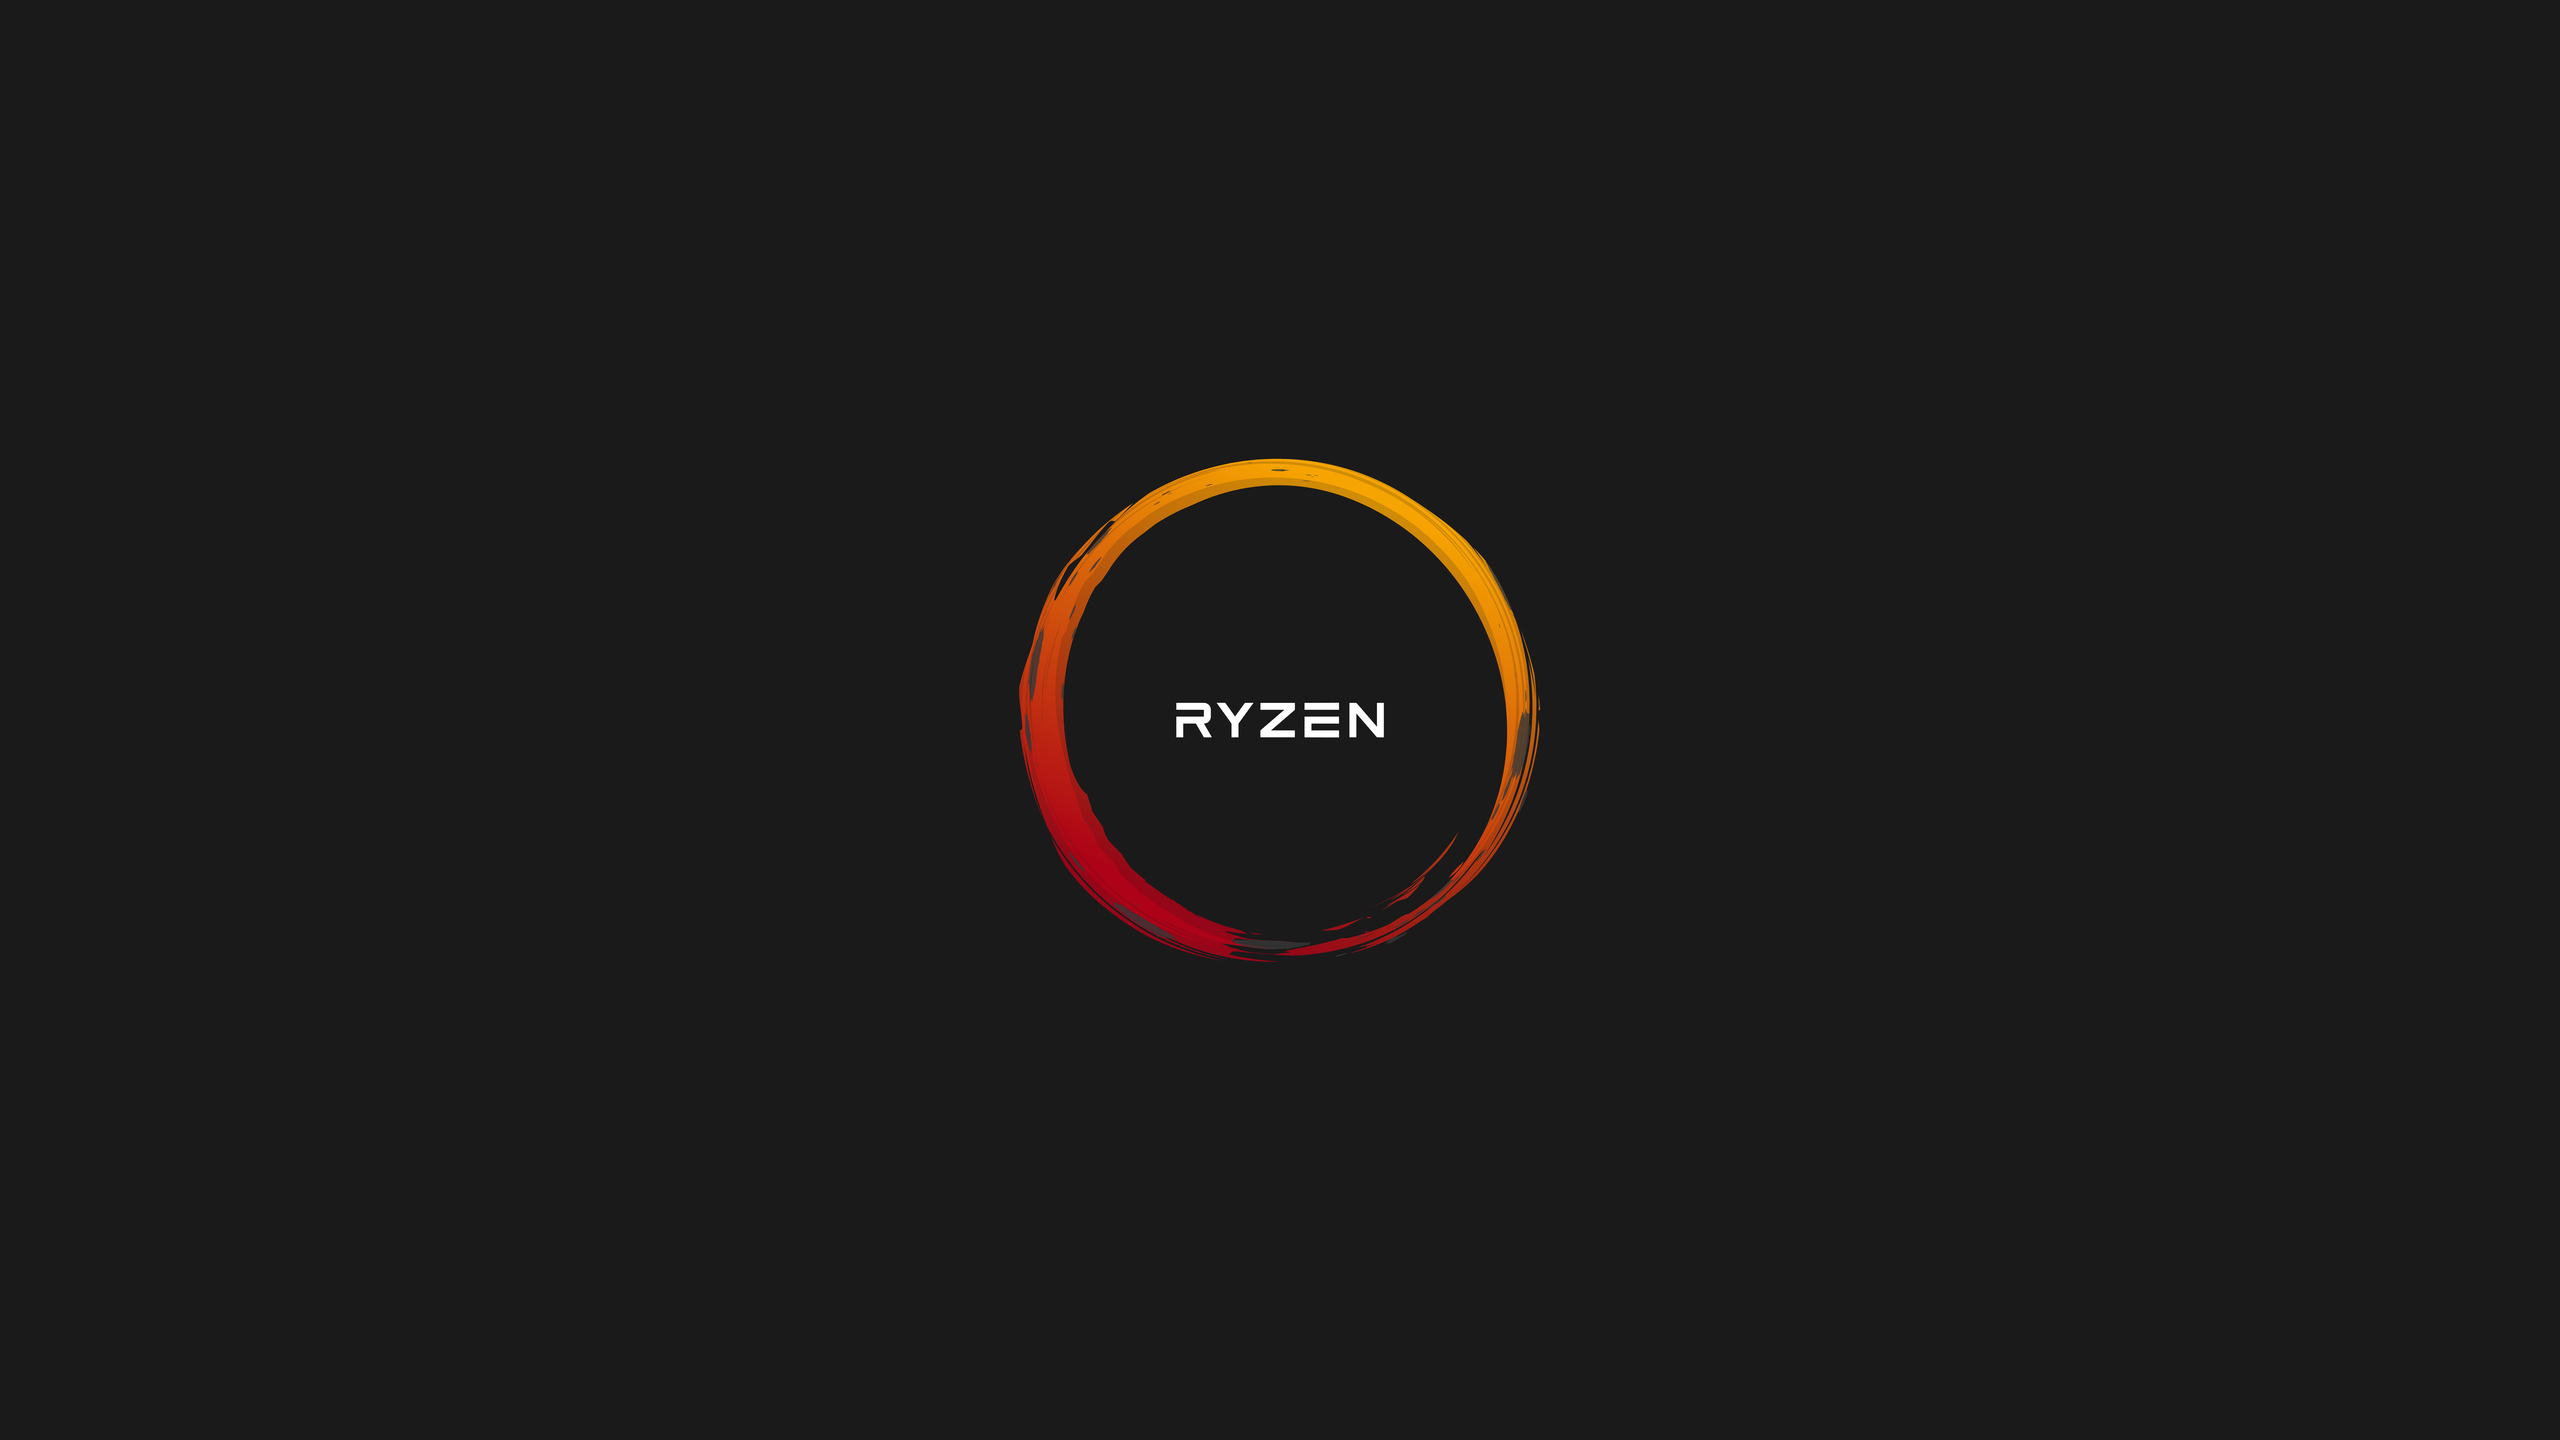 2560x1440 Amd Ryzen 8k 1440p Resolution Hd 4k Wallpapers Images Backgrounds Photos And Pictures